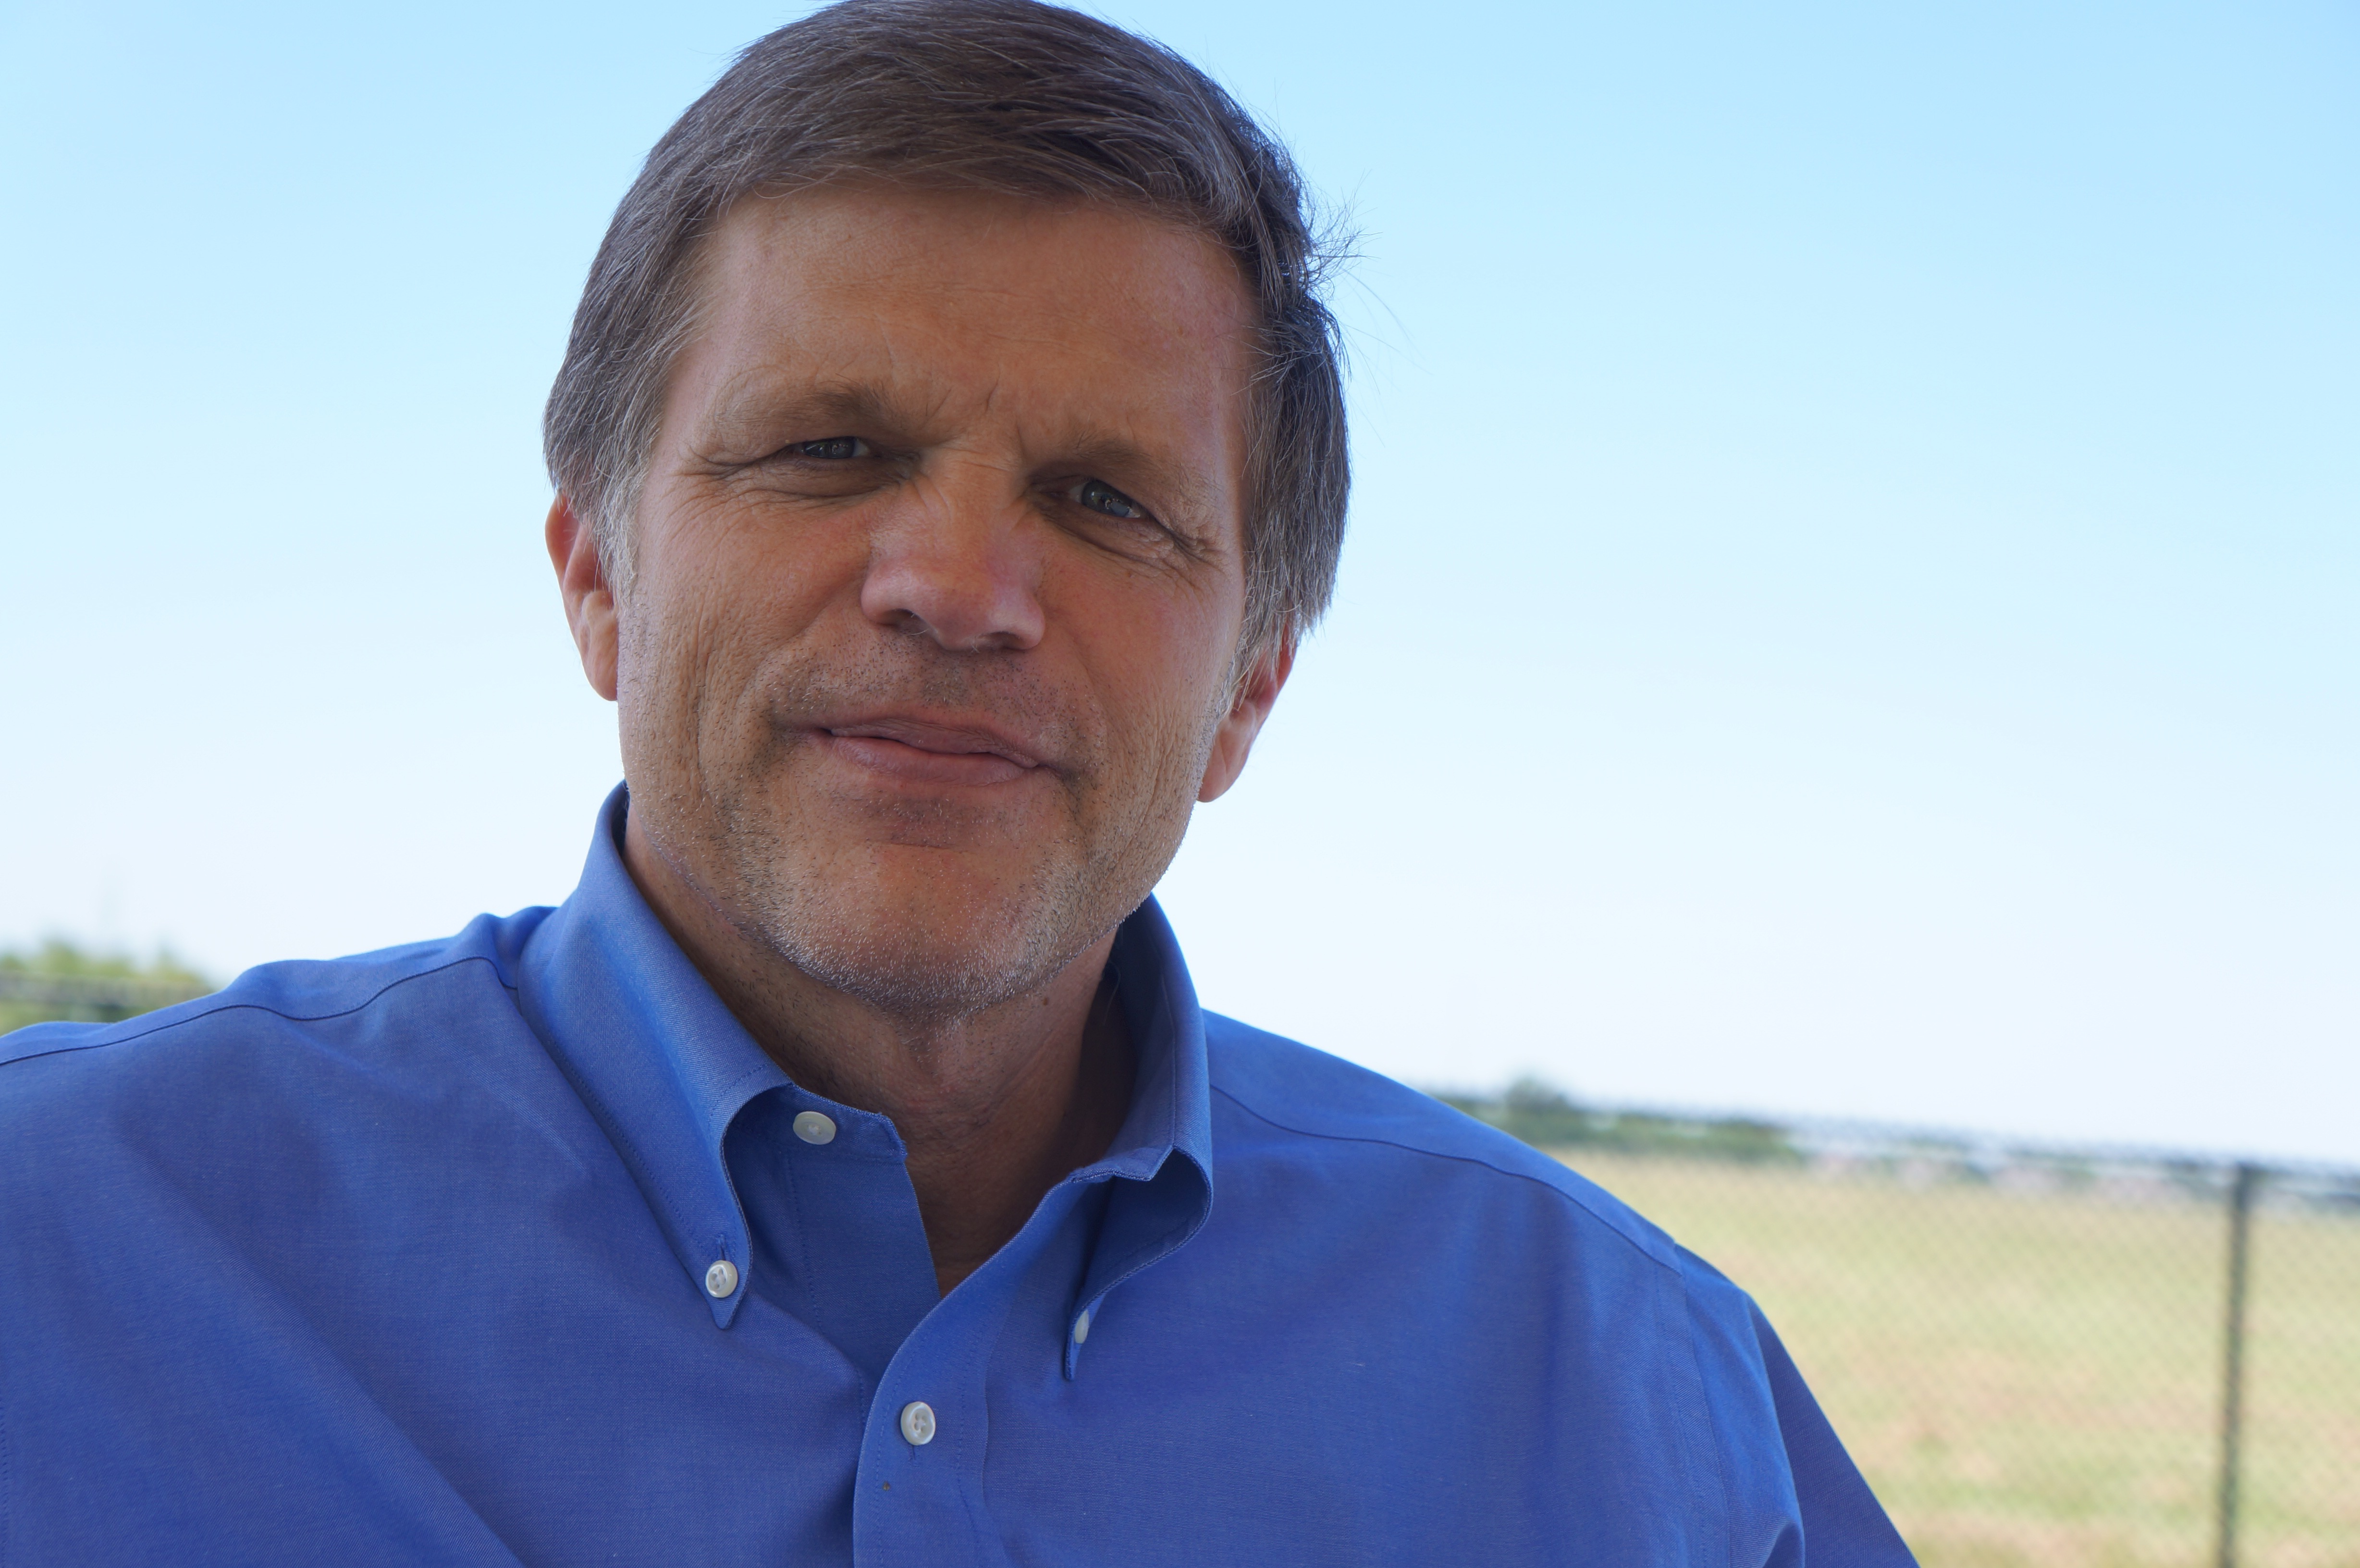 Historian and author Douglas Brinkley